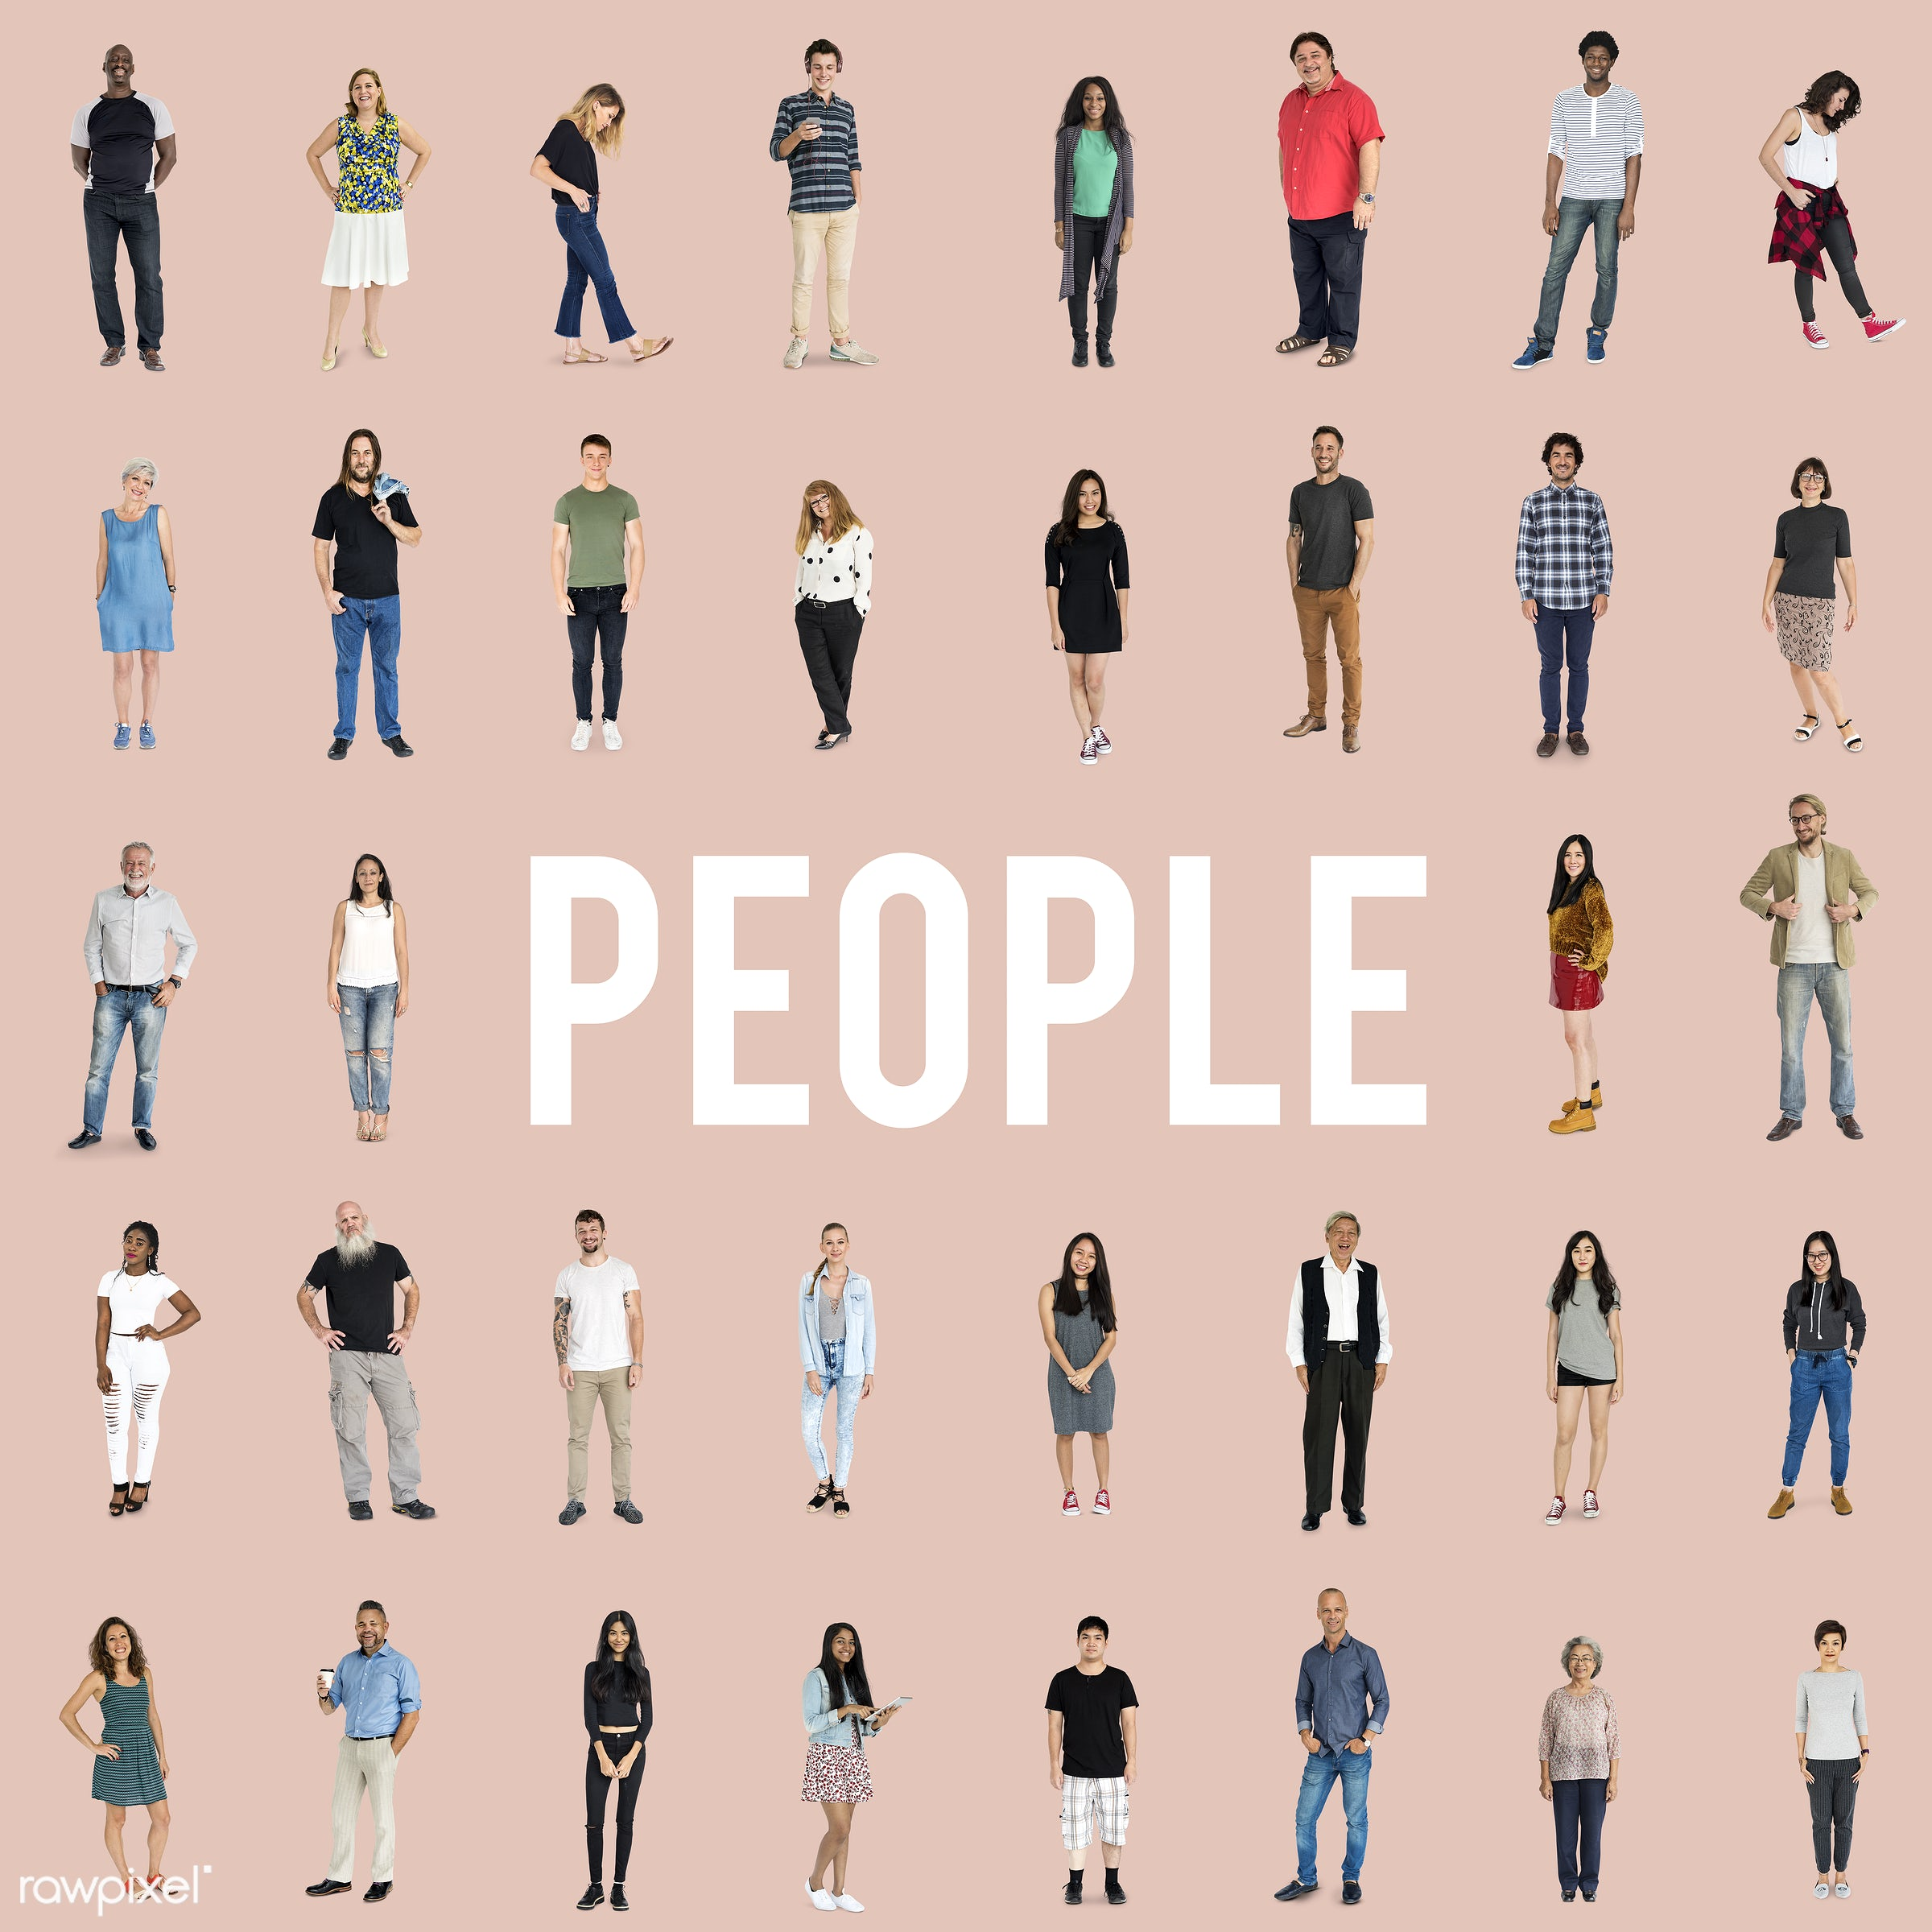 adult, african, african descent, asian, attraction, attractive, caucasian, cheerful, collection, diverse, diversity, elderly...